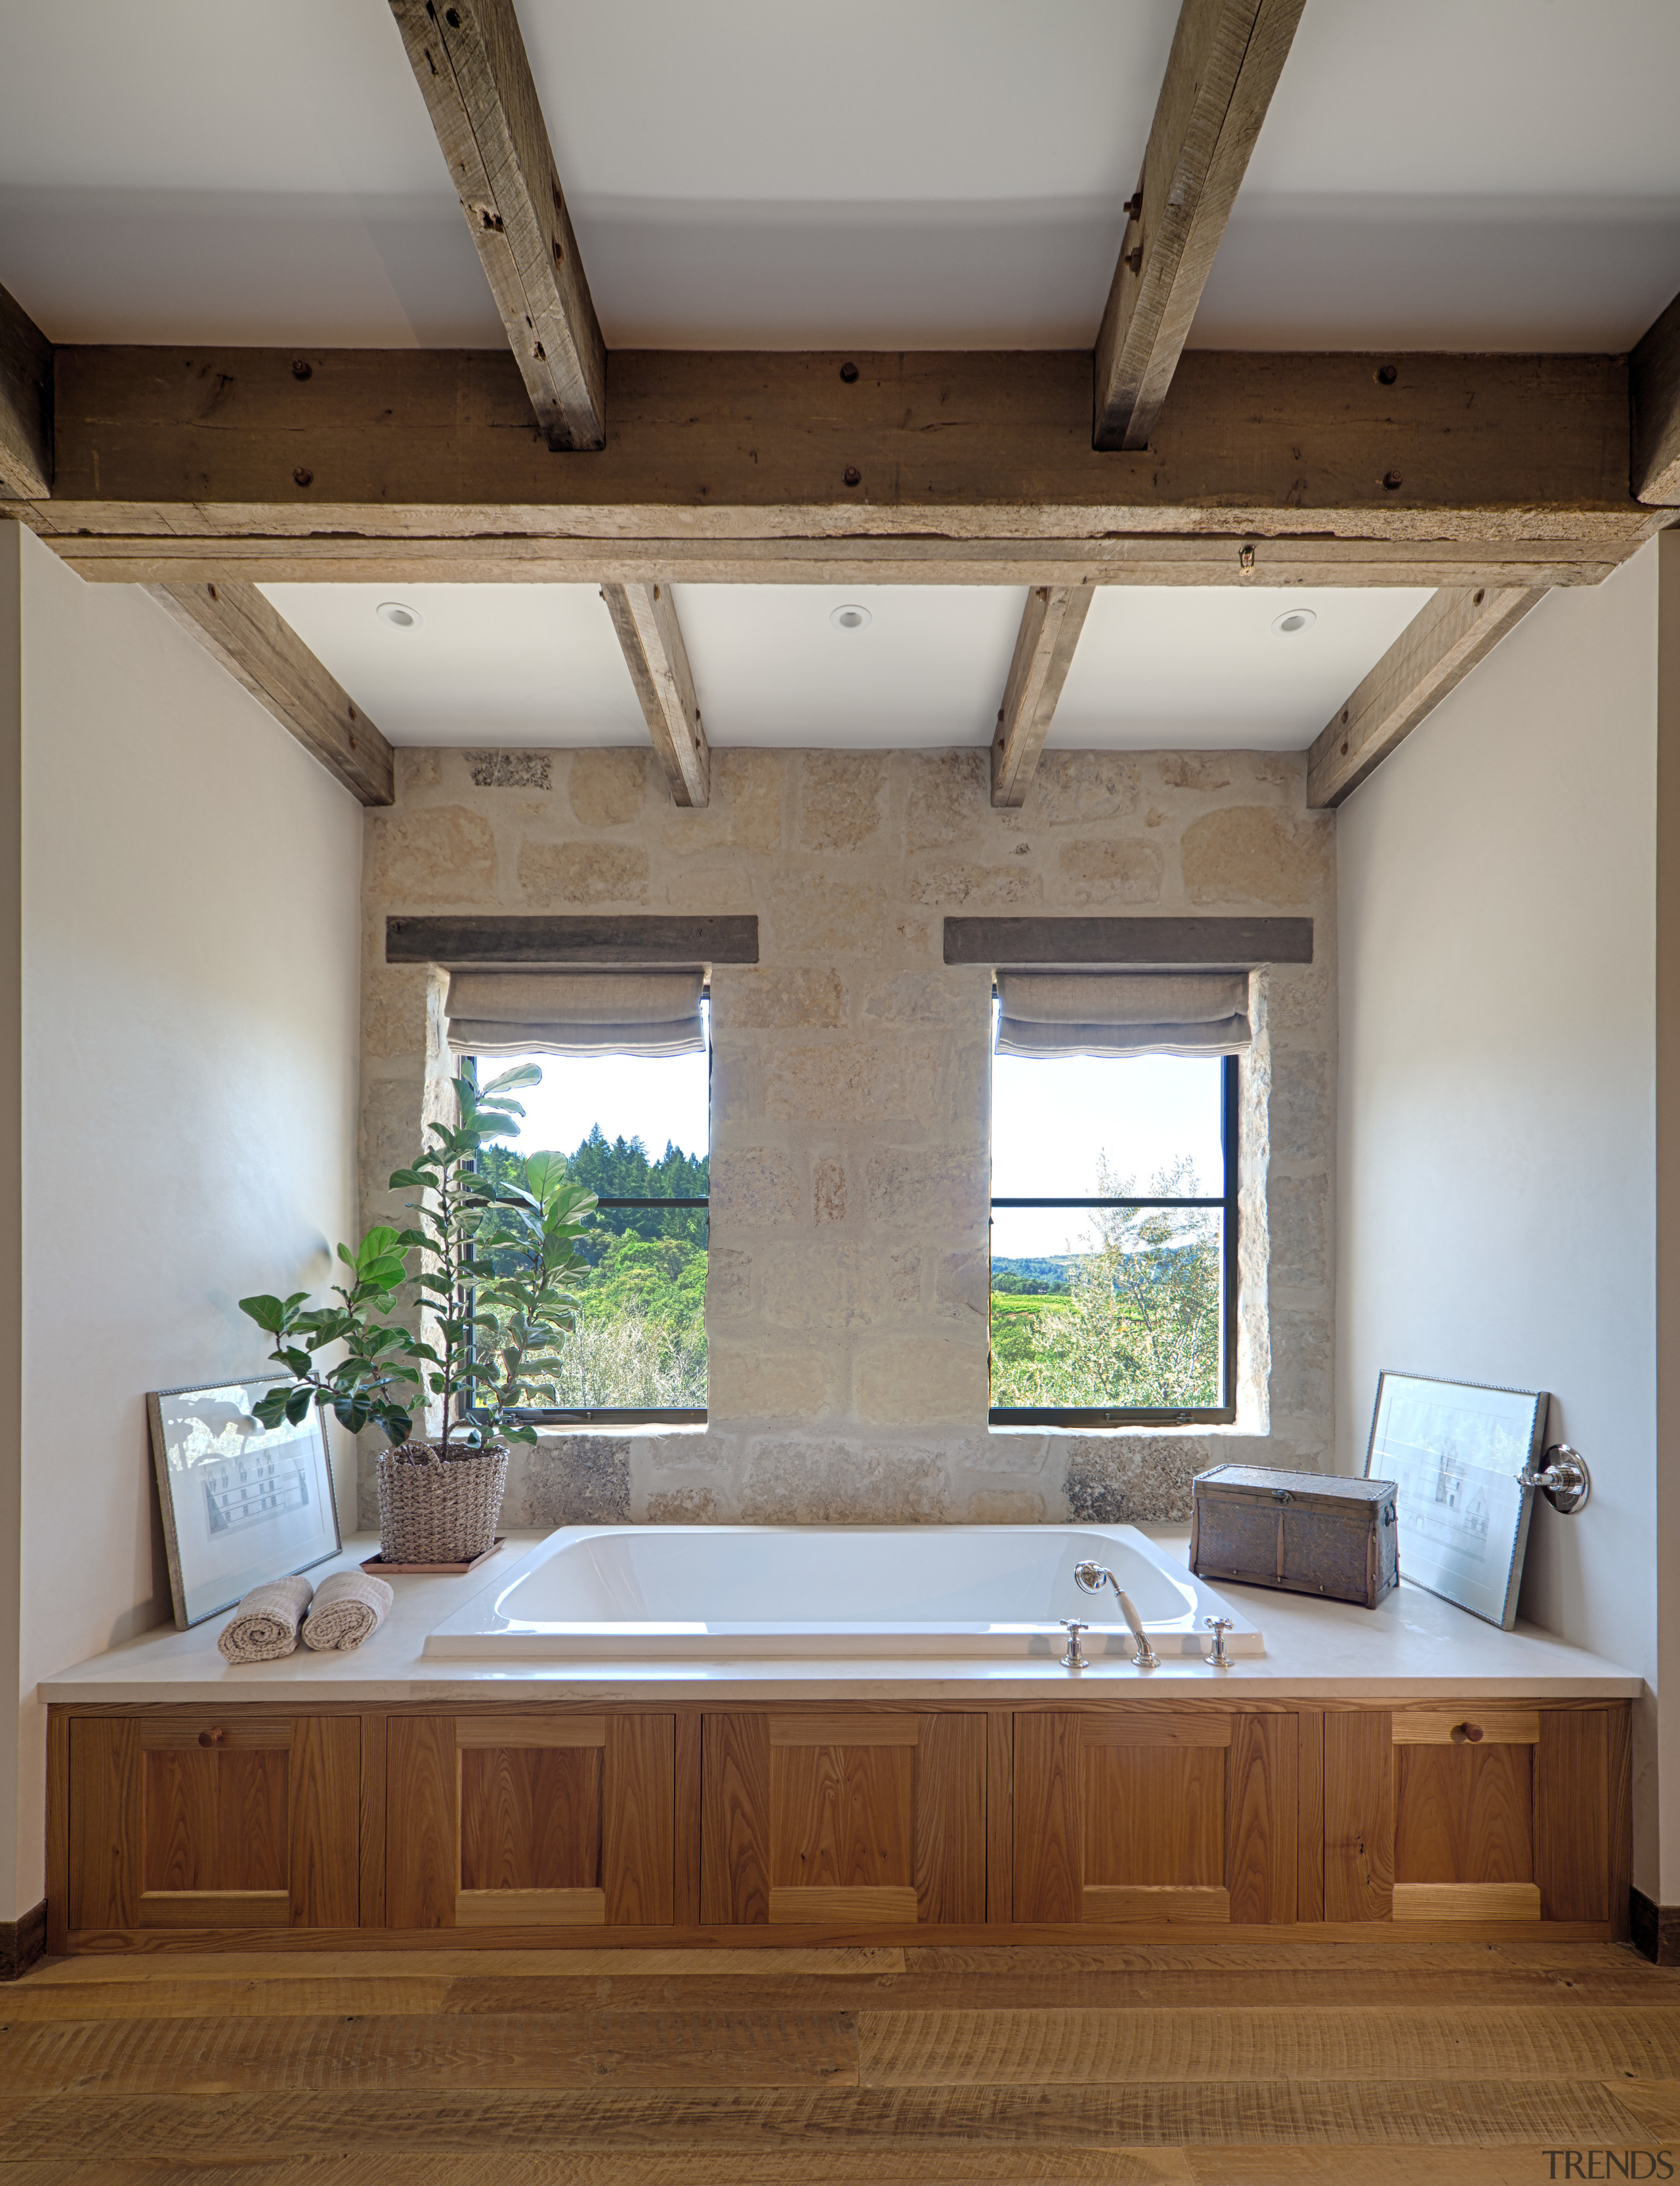 The bathroom on the second floor of the architecture, bathroom, ceiling, daylighting, estate, floor, home, interior design, room, window, wood, gray, brown